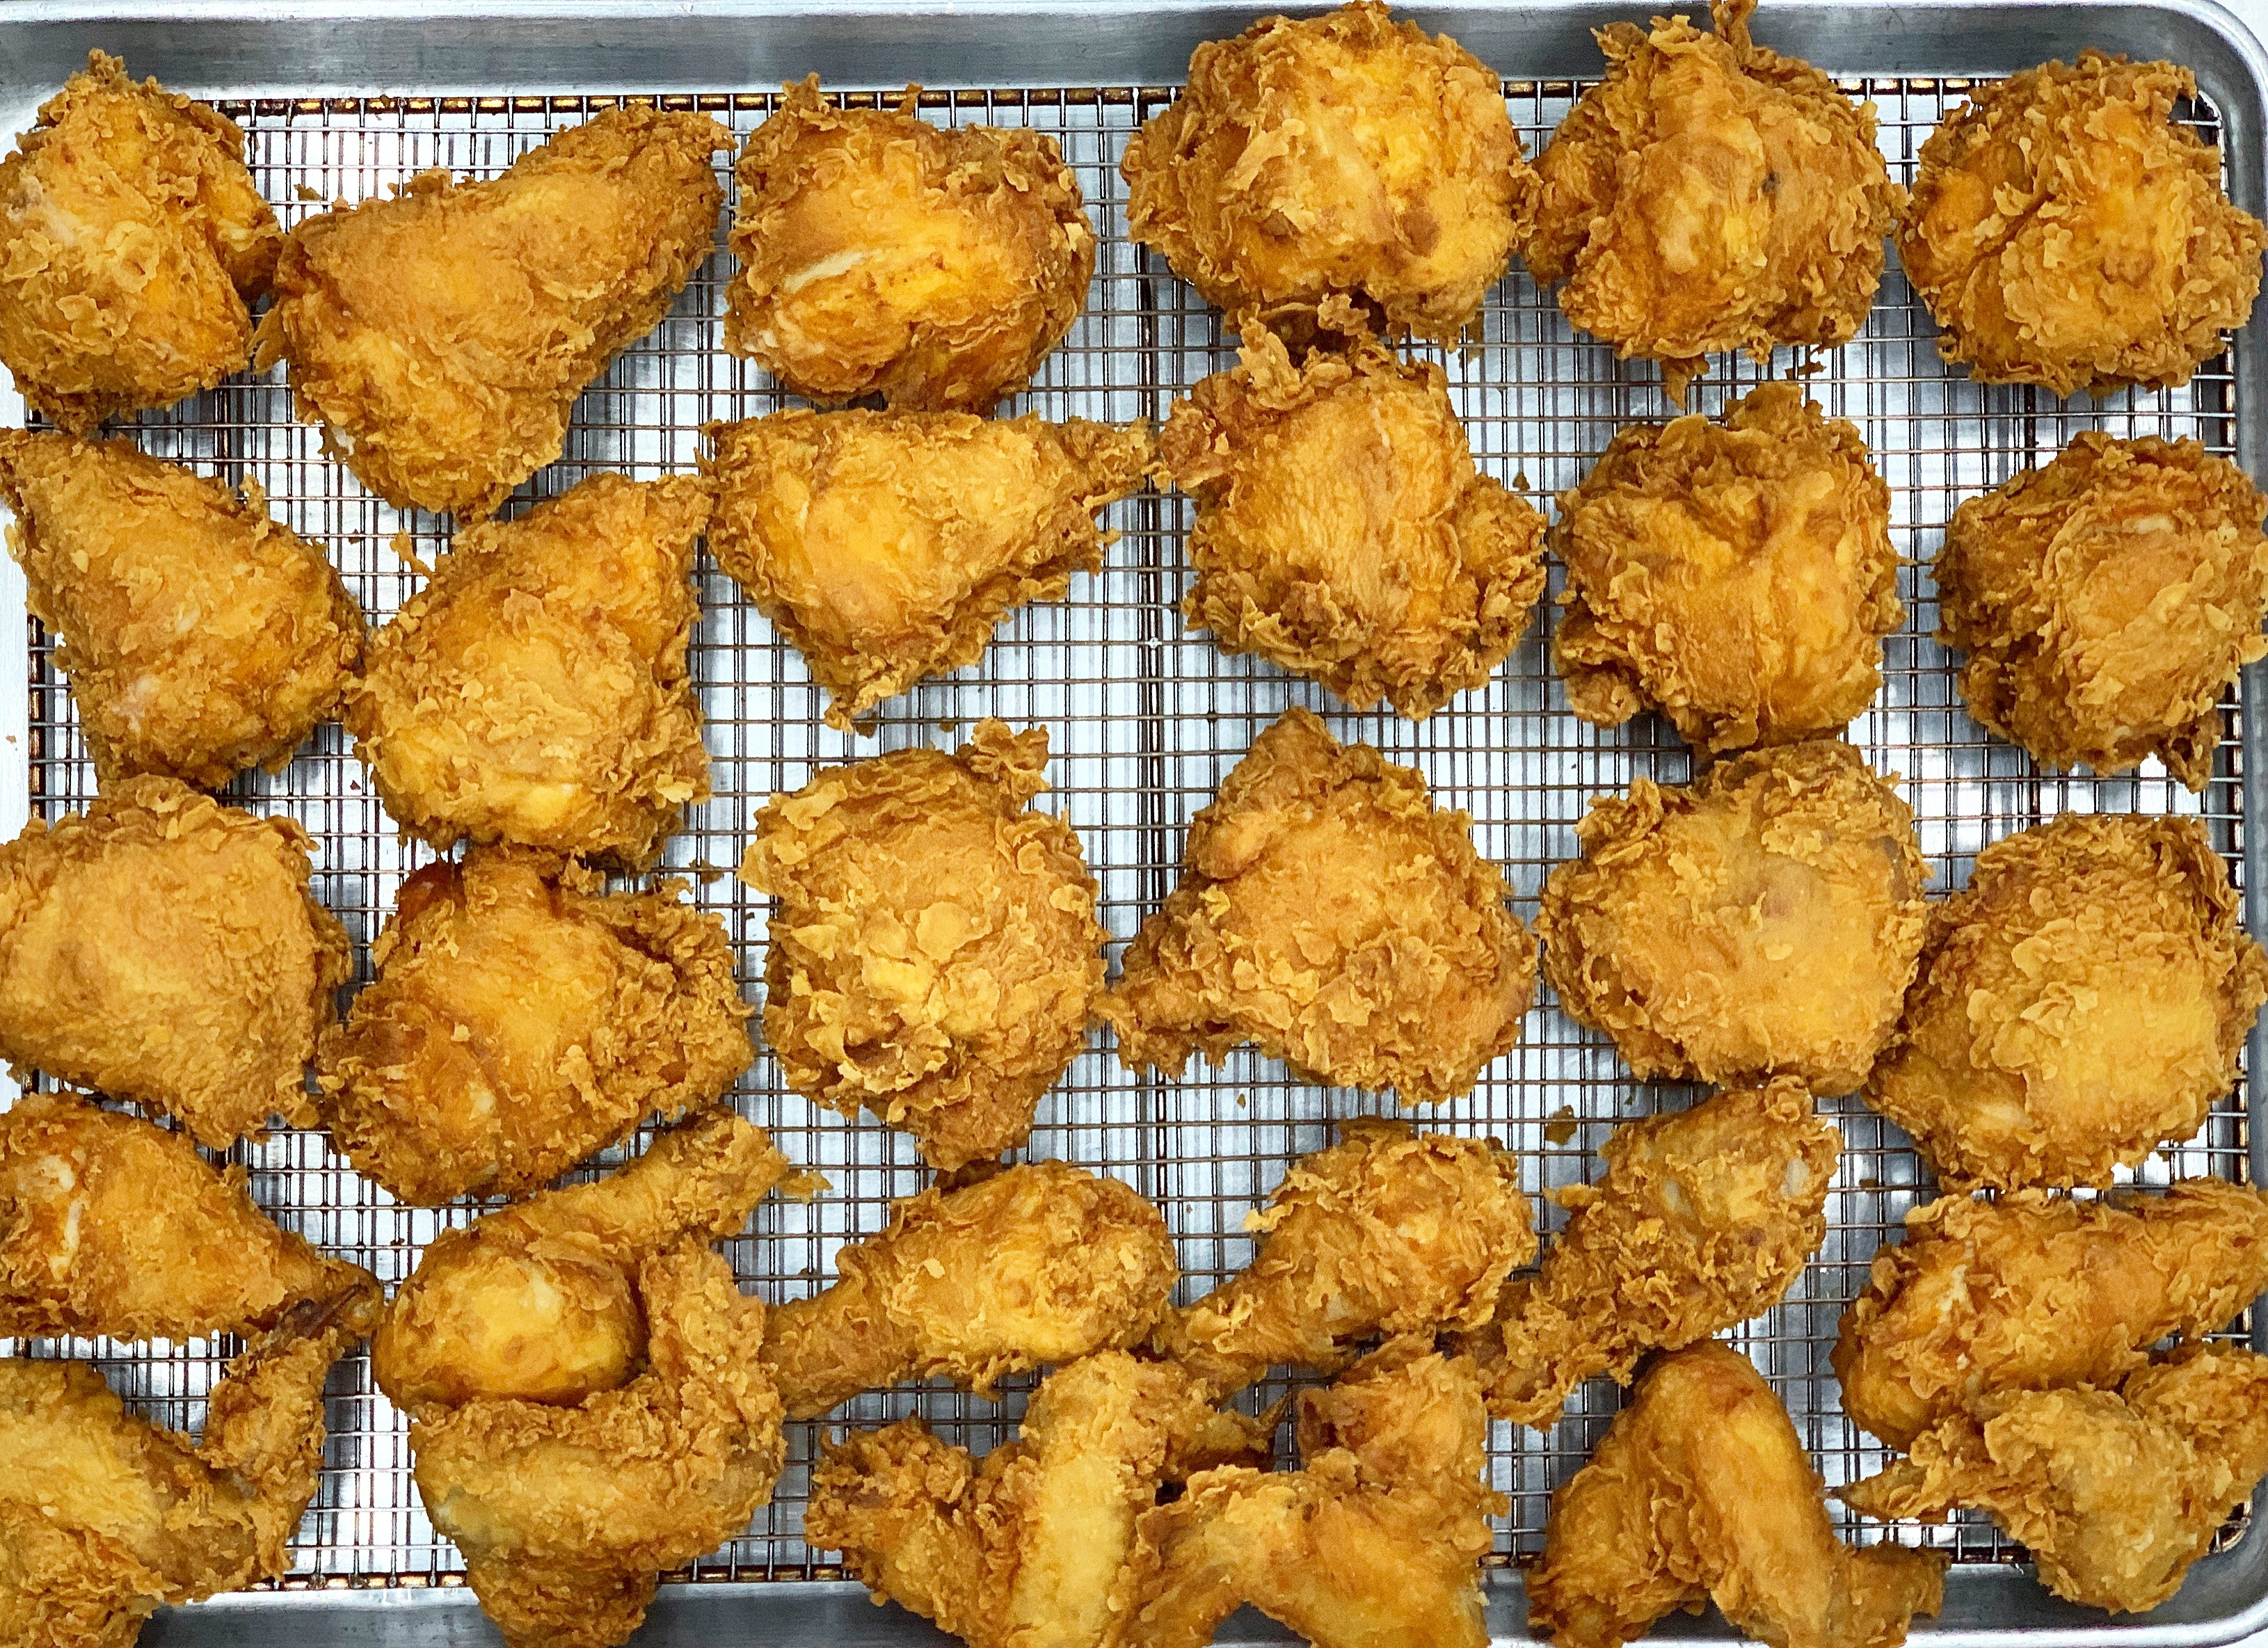 A wire tray of fried chicken pieces from above